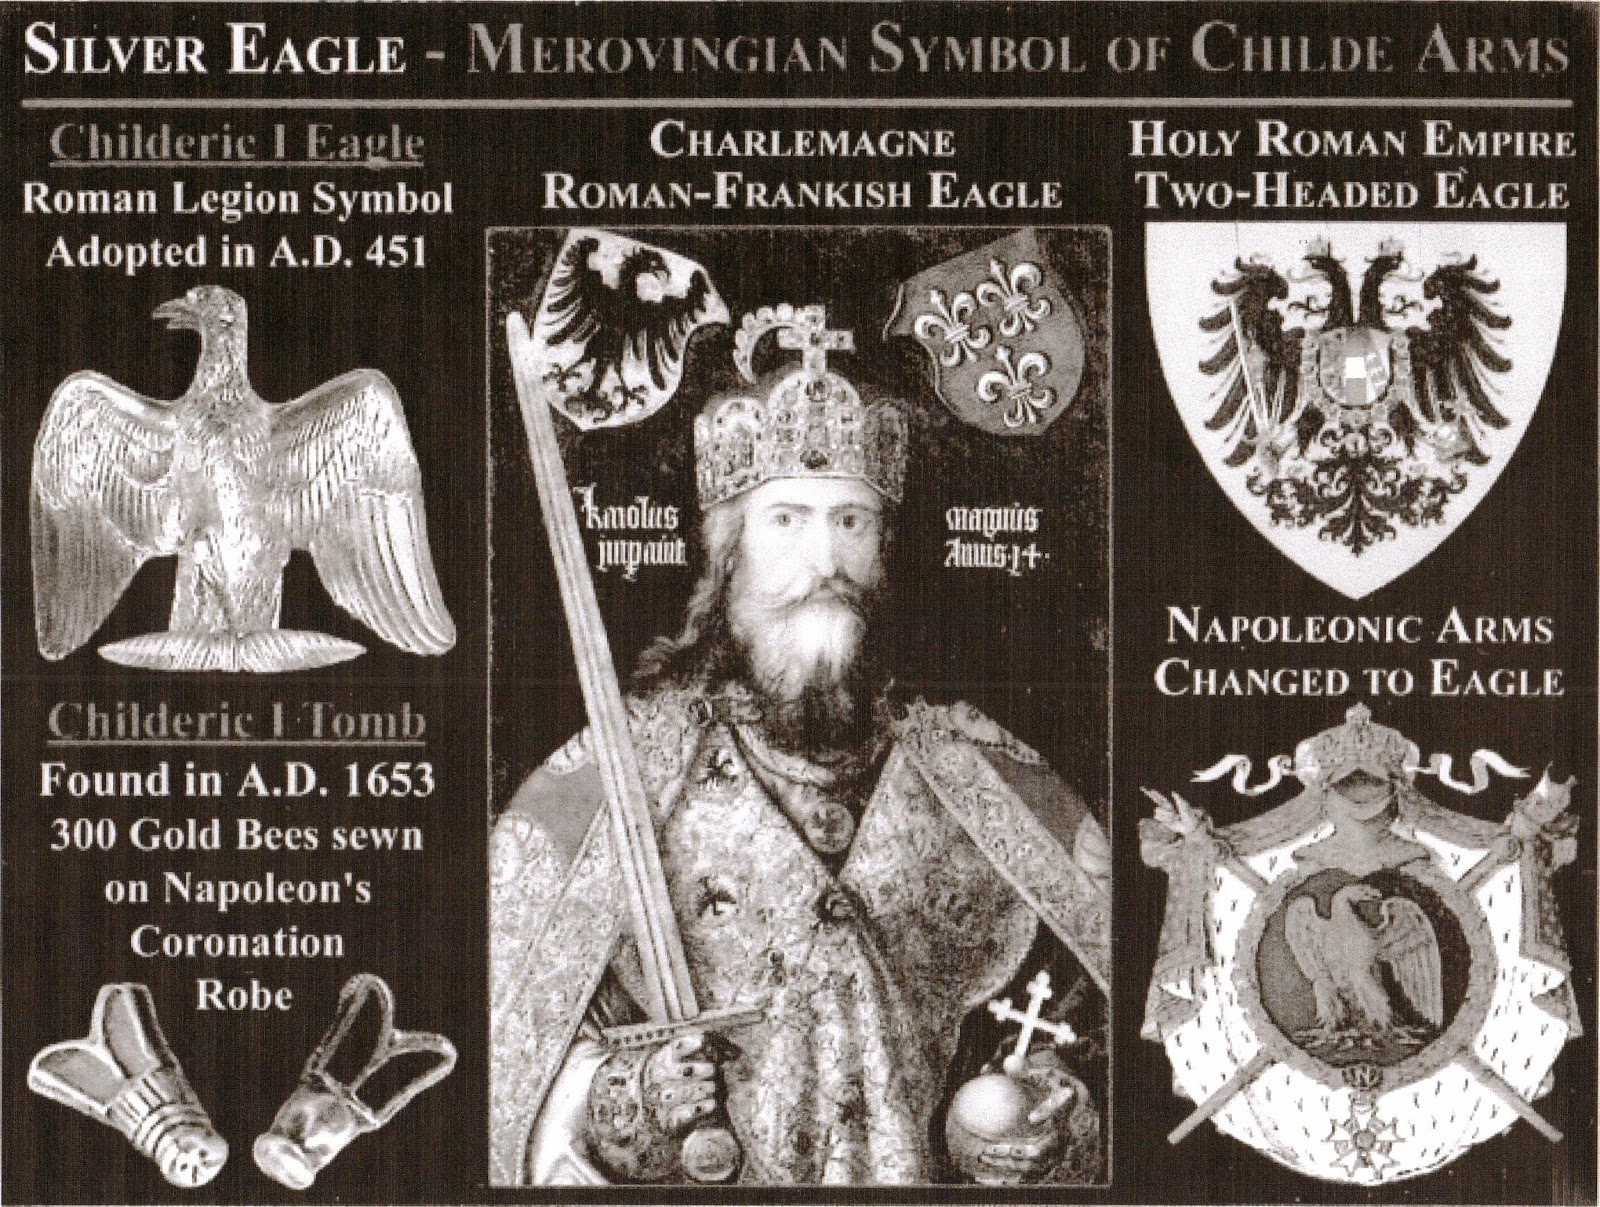 stagge parker histories childe of england  childe coat of arms merovingian link from the r legion eagle